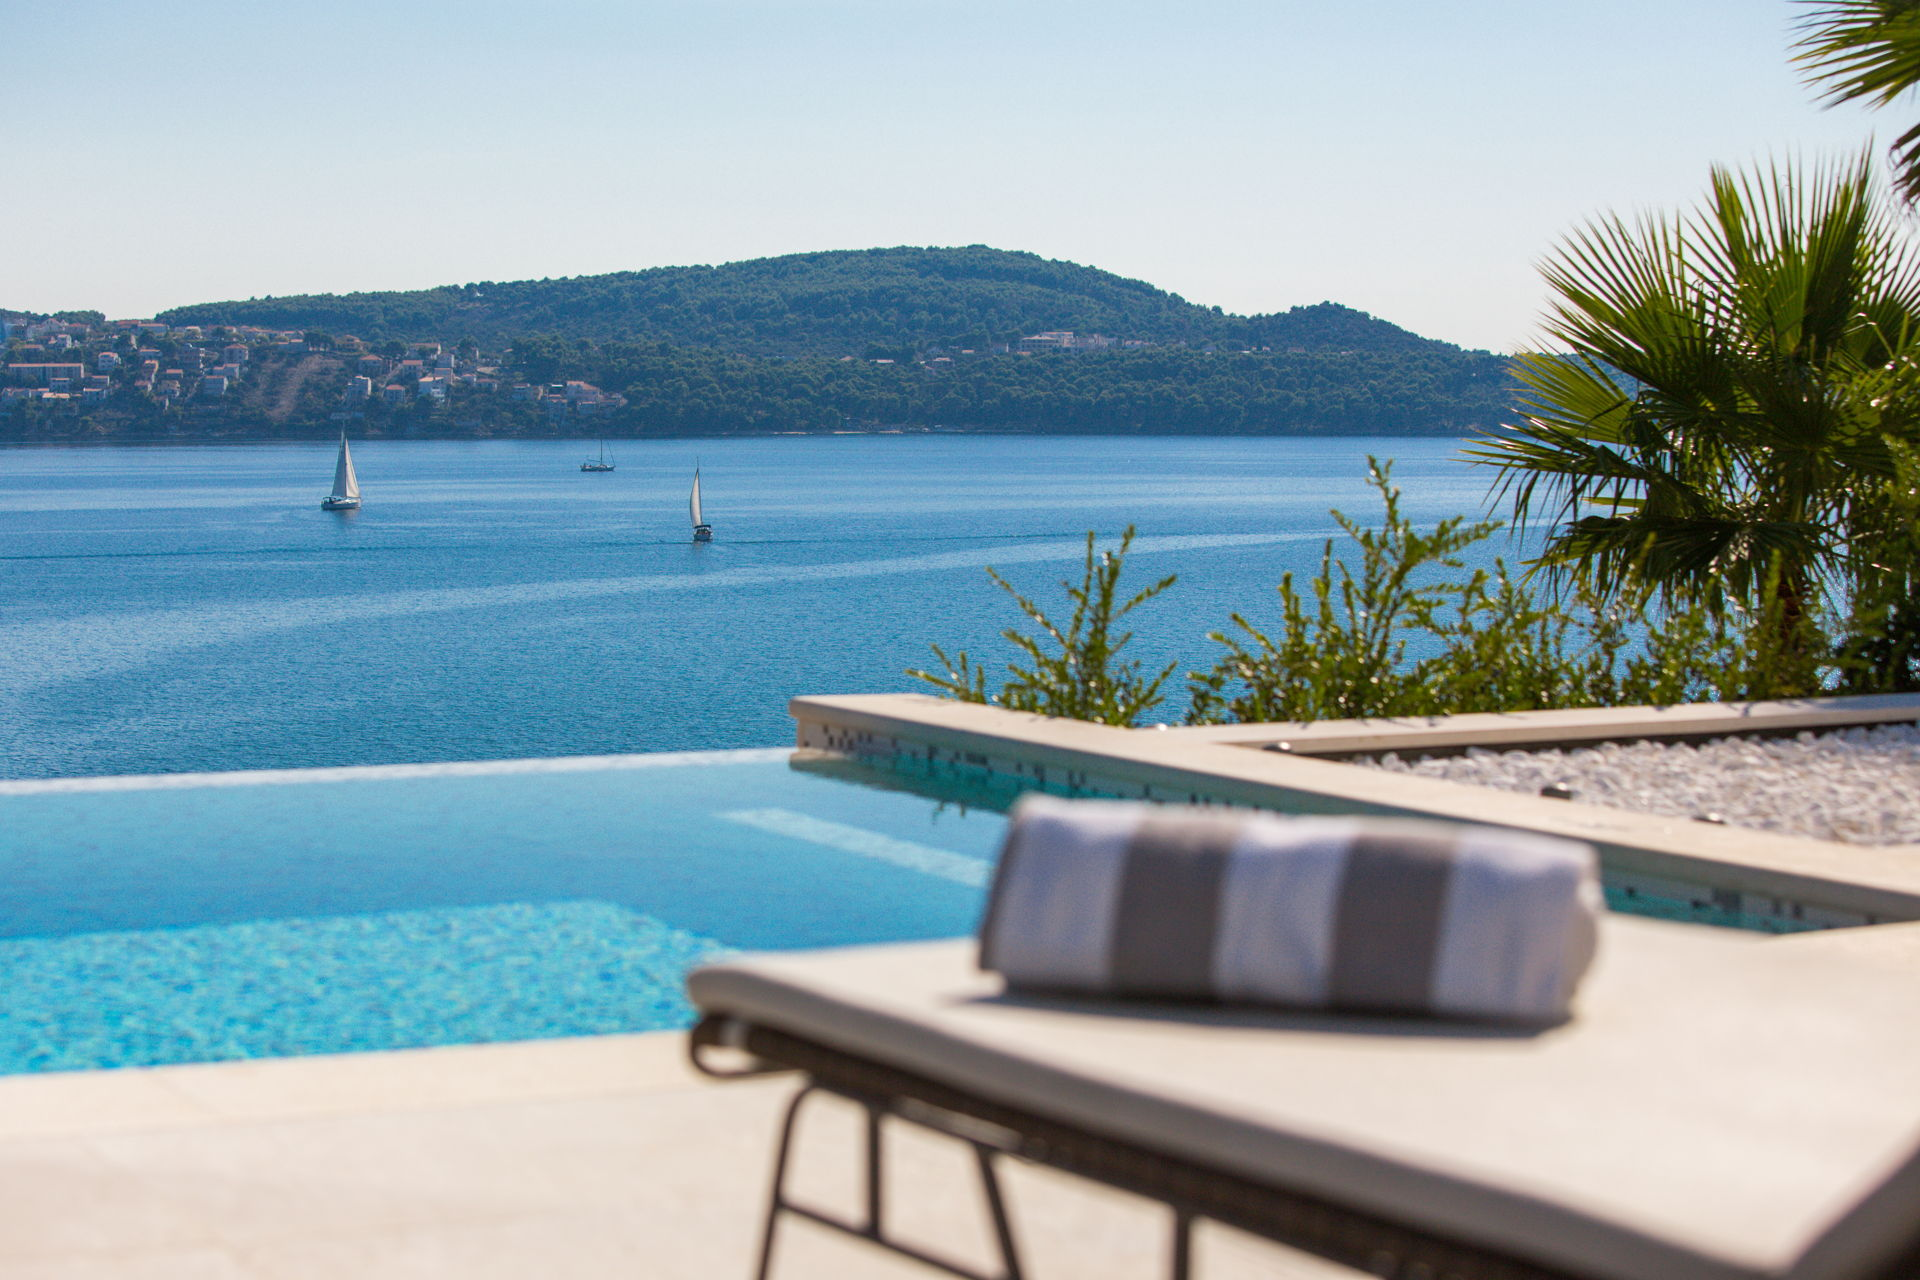 View of the Adriatic sea from the Infinity Pool in Luxury Villa Elyzeum